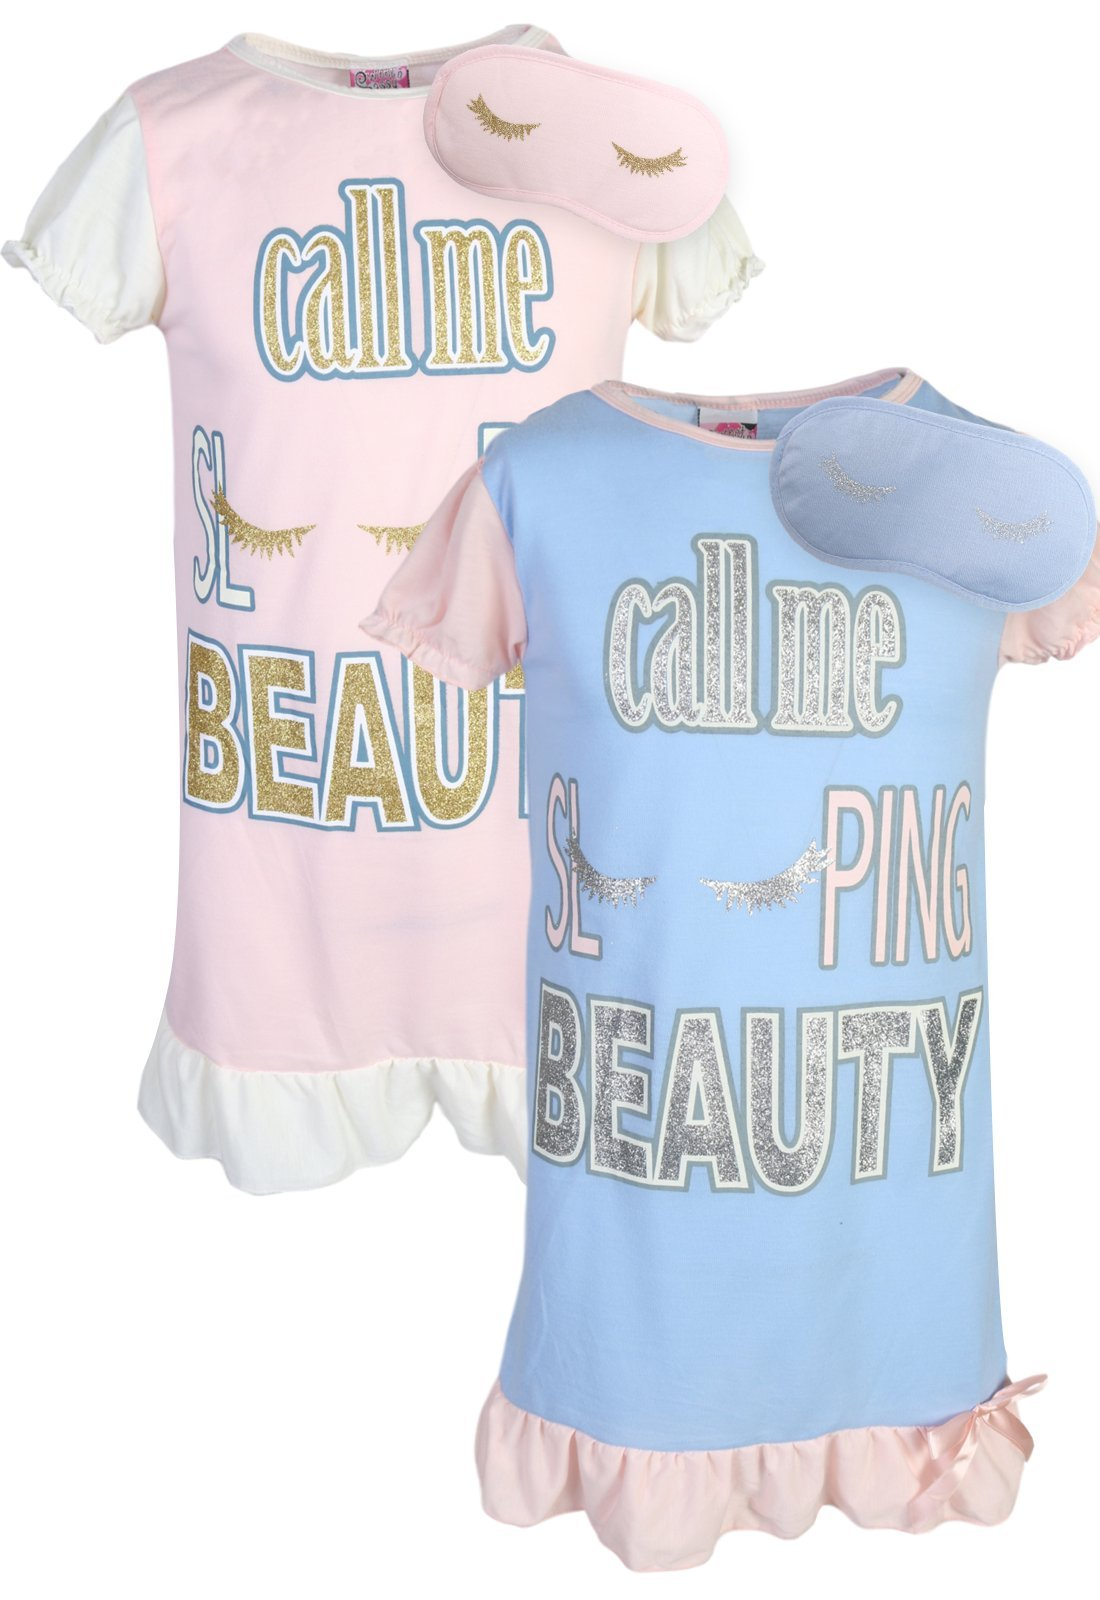 Sweet & Sassy Girls Short Sleeve Nightgown Pajama with Eye Mask (2 Pack) Sleeping Beauty, Size 14'